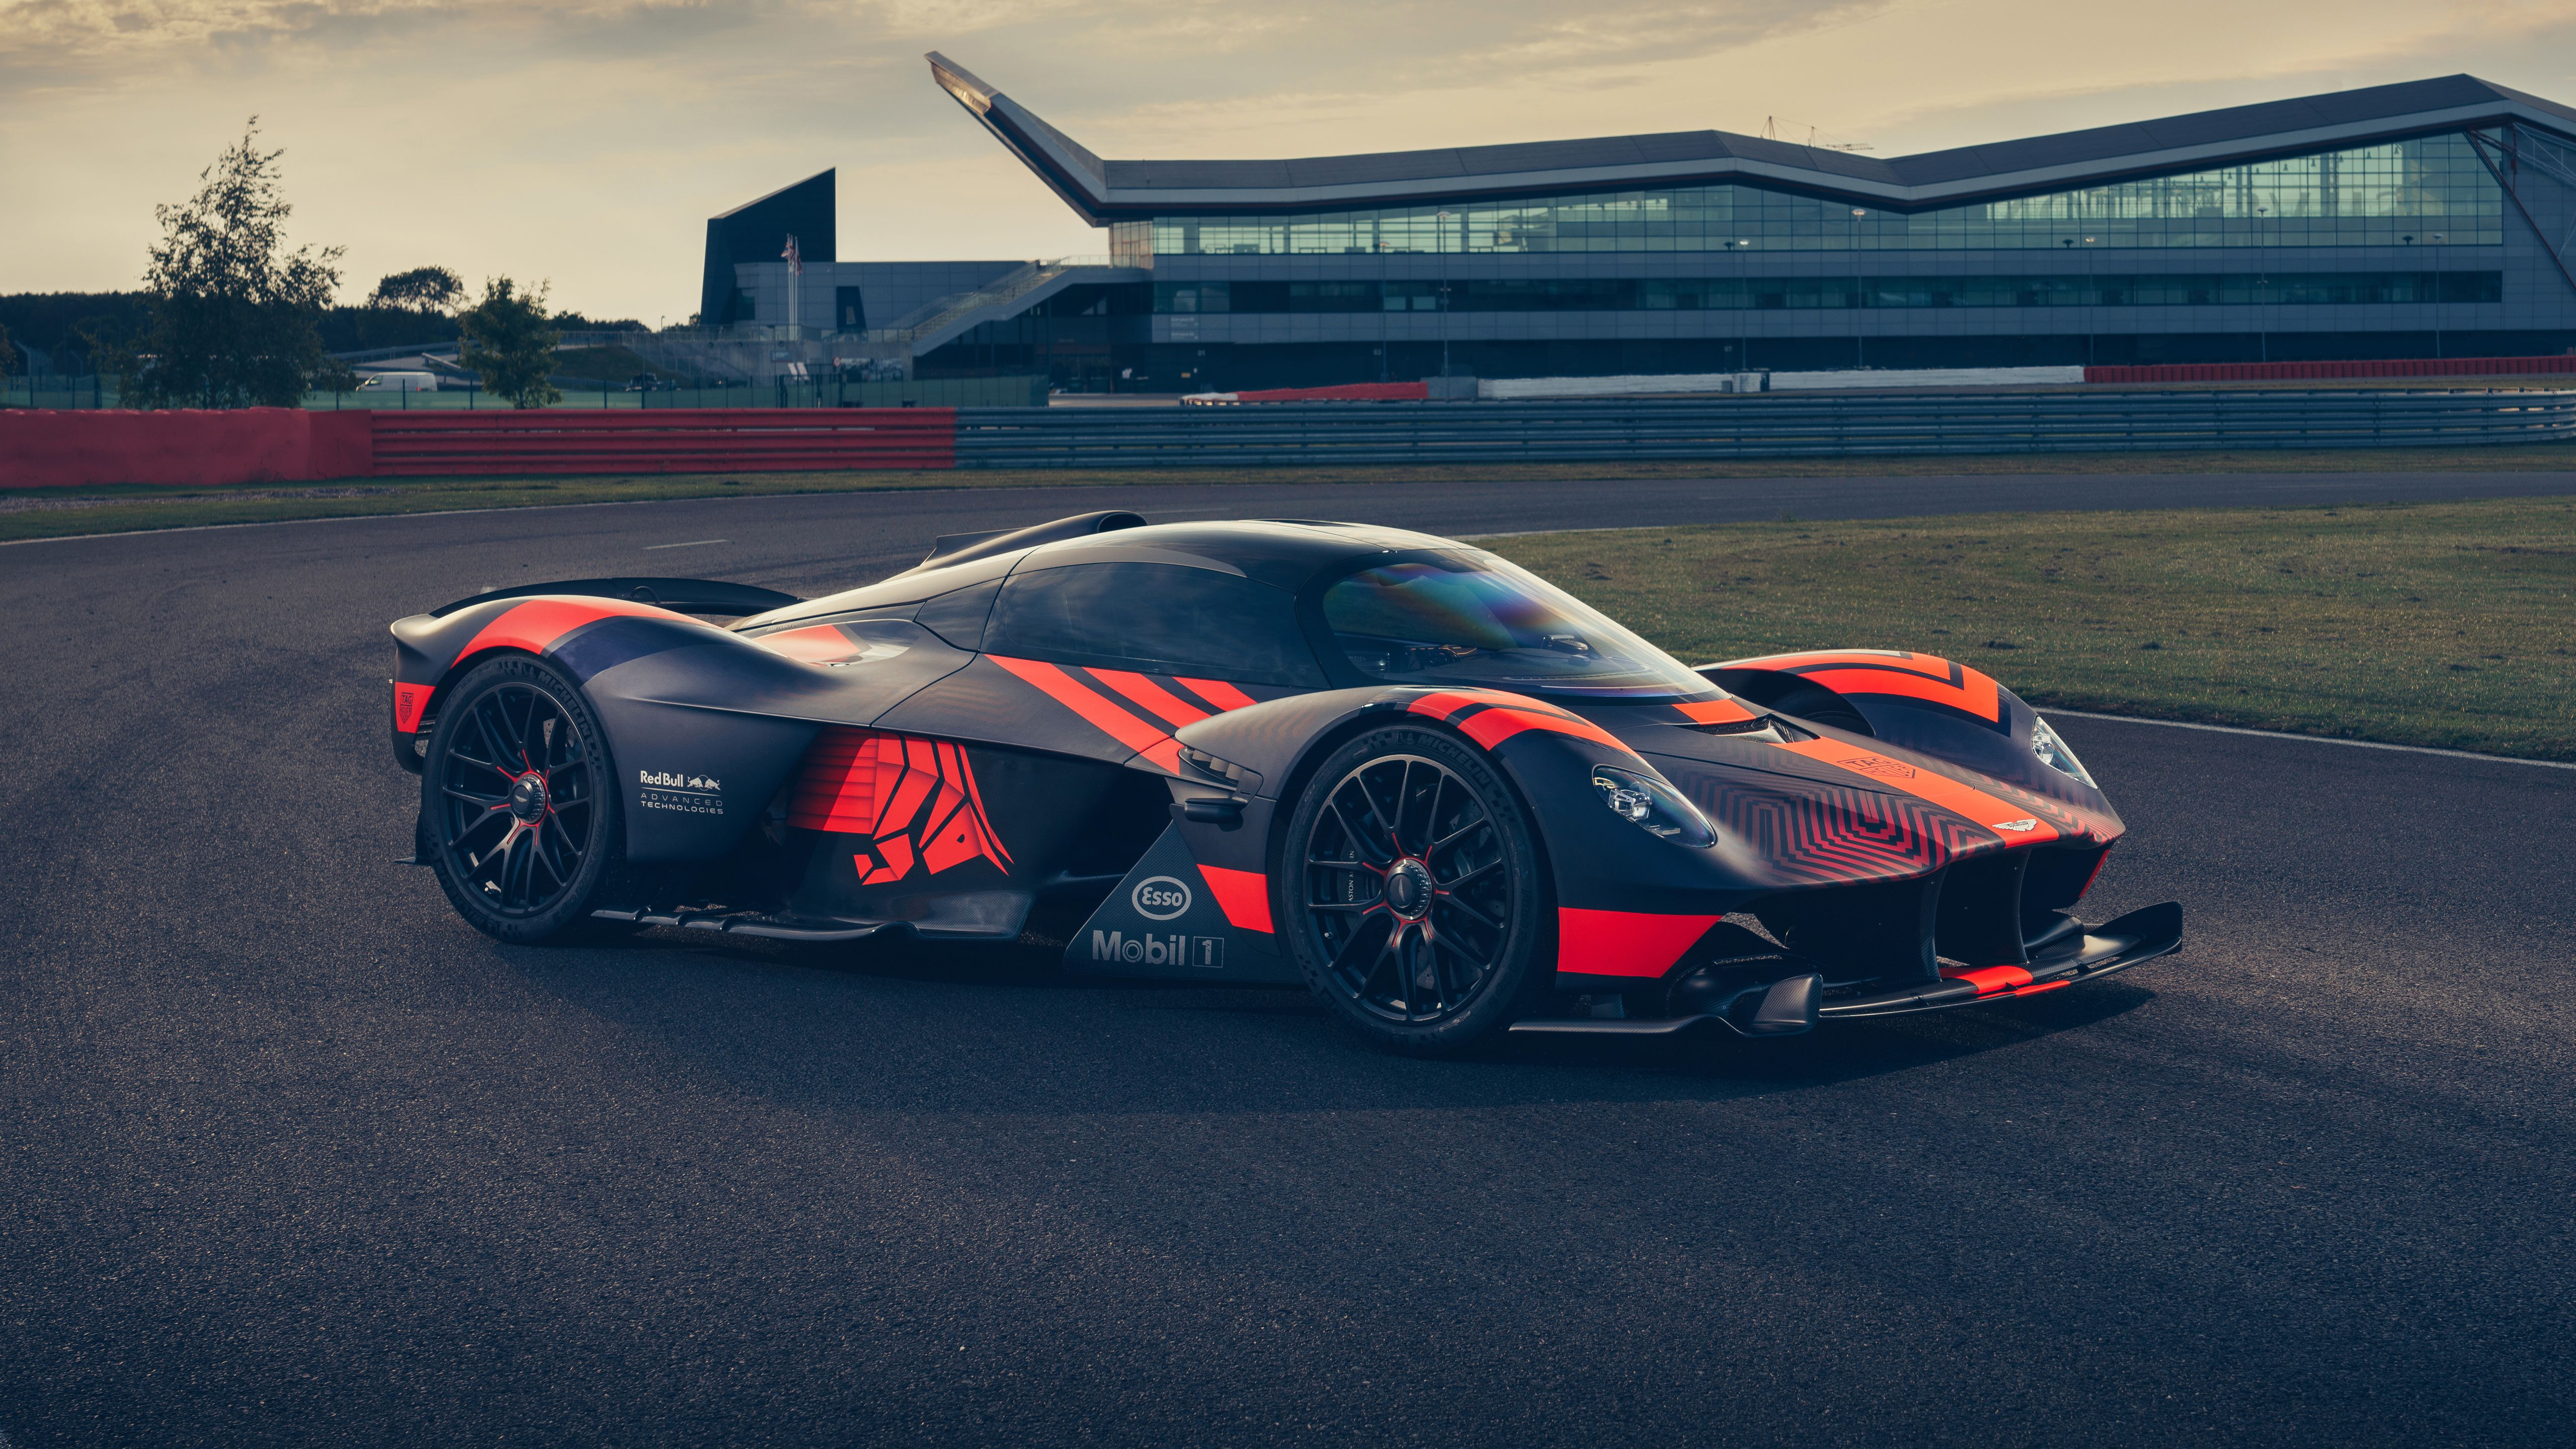 Aston Martin Valkyrie Wallpapers Top Free Aston Martin Valkyrie Backgrounds Wallpaperaccess